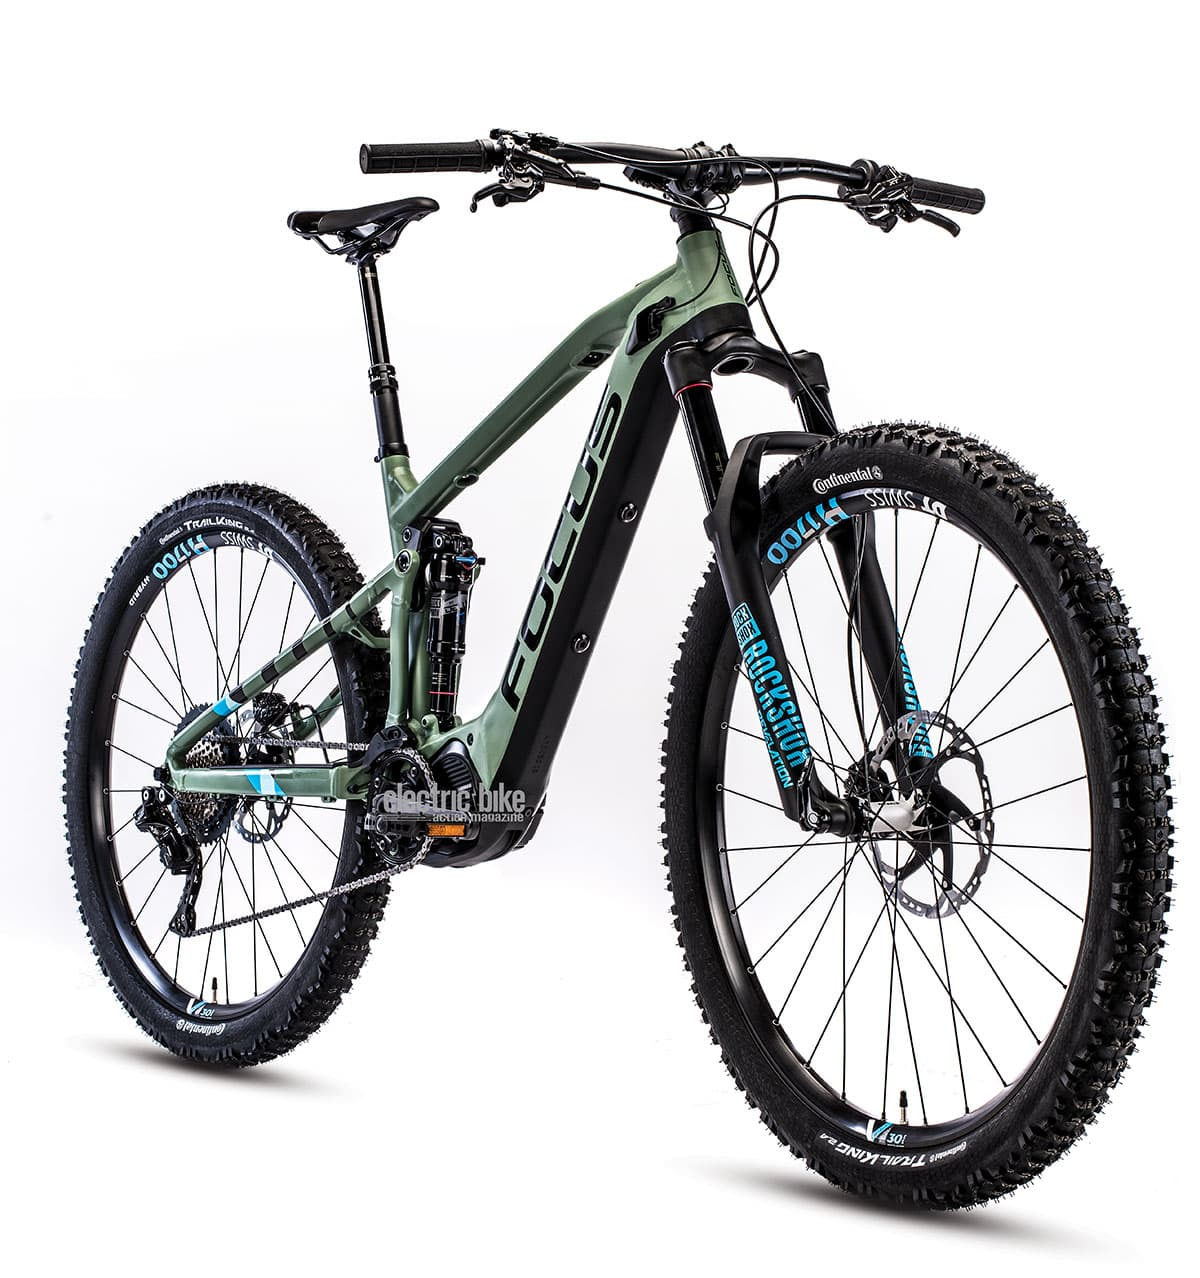 BIKE REVIEW: FOCUS JAM² 29 Pro | Electric Bike Action